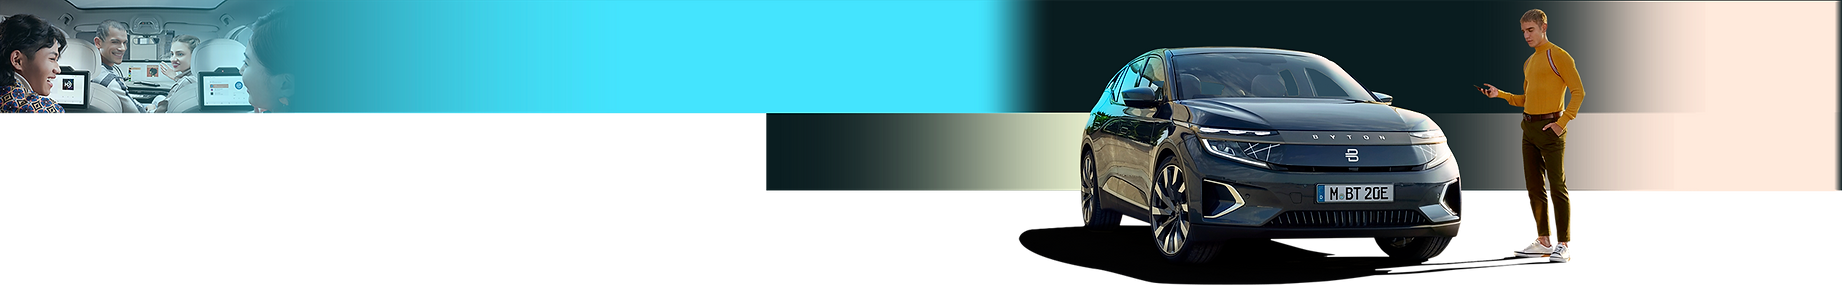 byton banner image.png